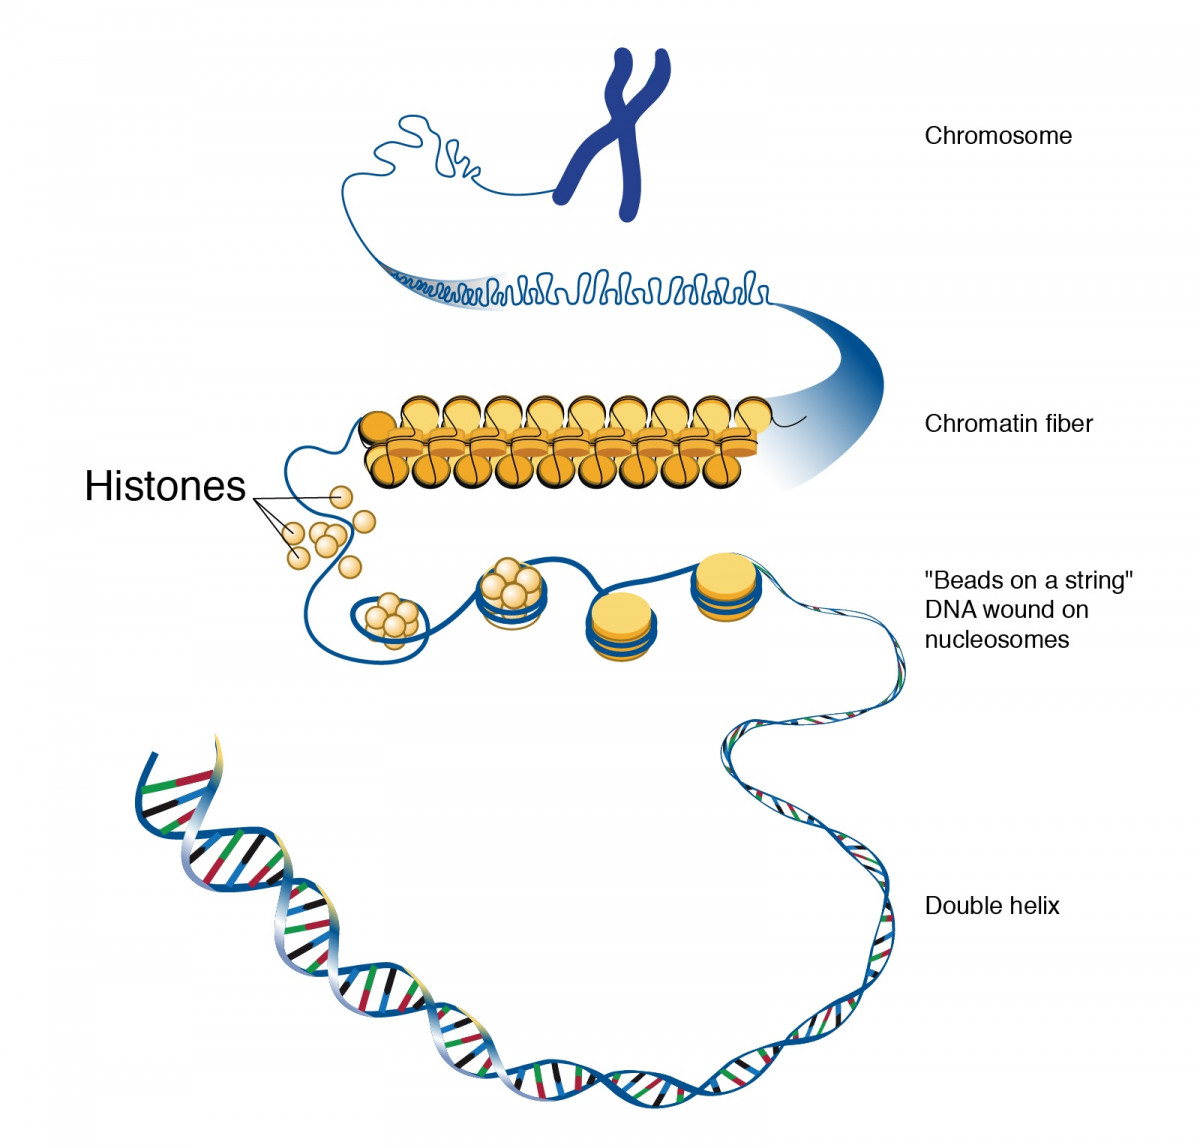 diagram showing how DNA is packaged into nucleosomes and chromosomes by winding around histones